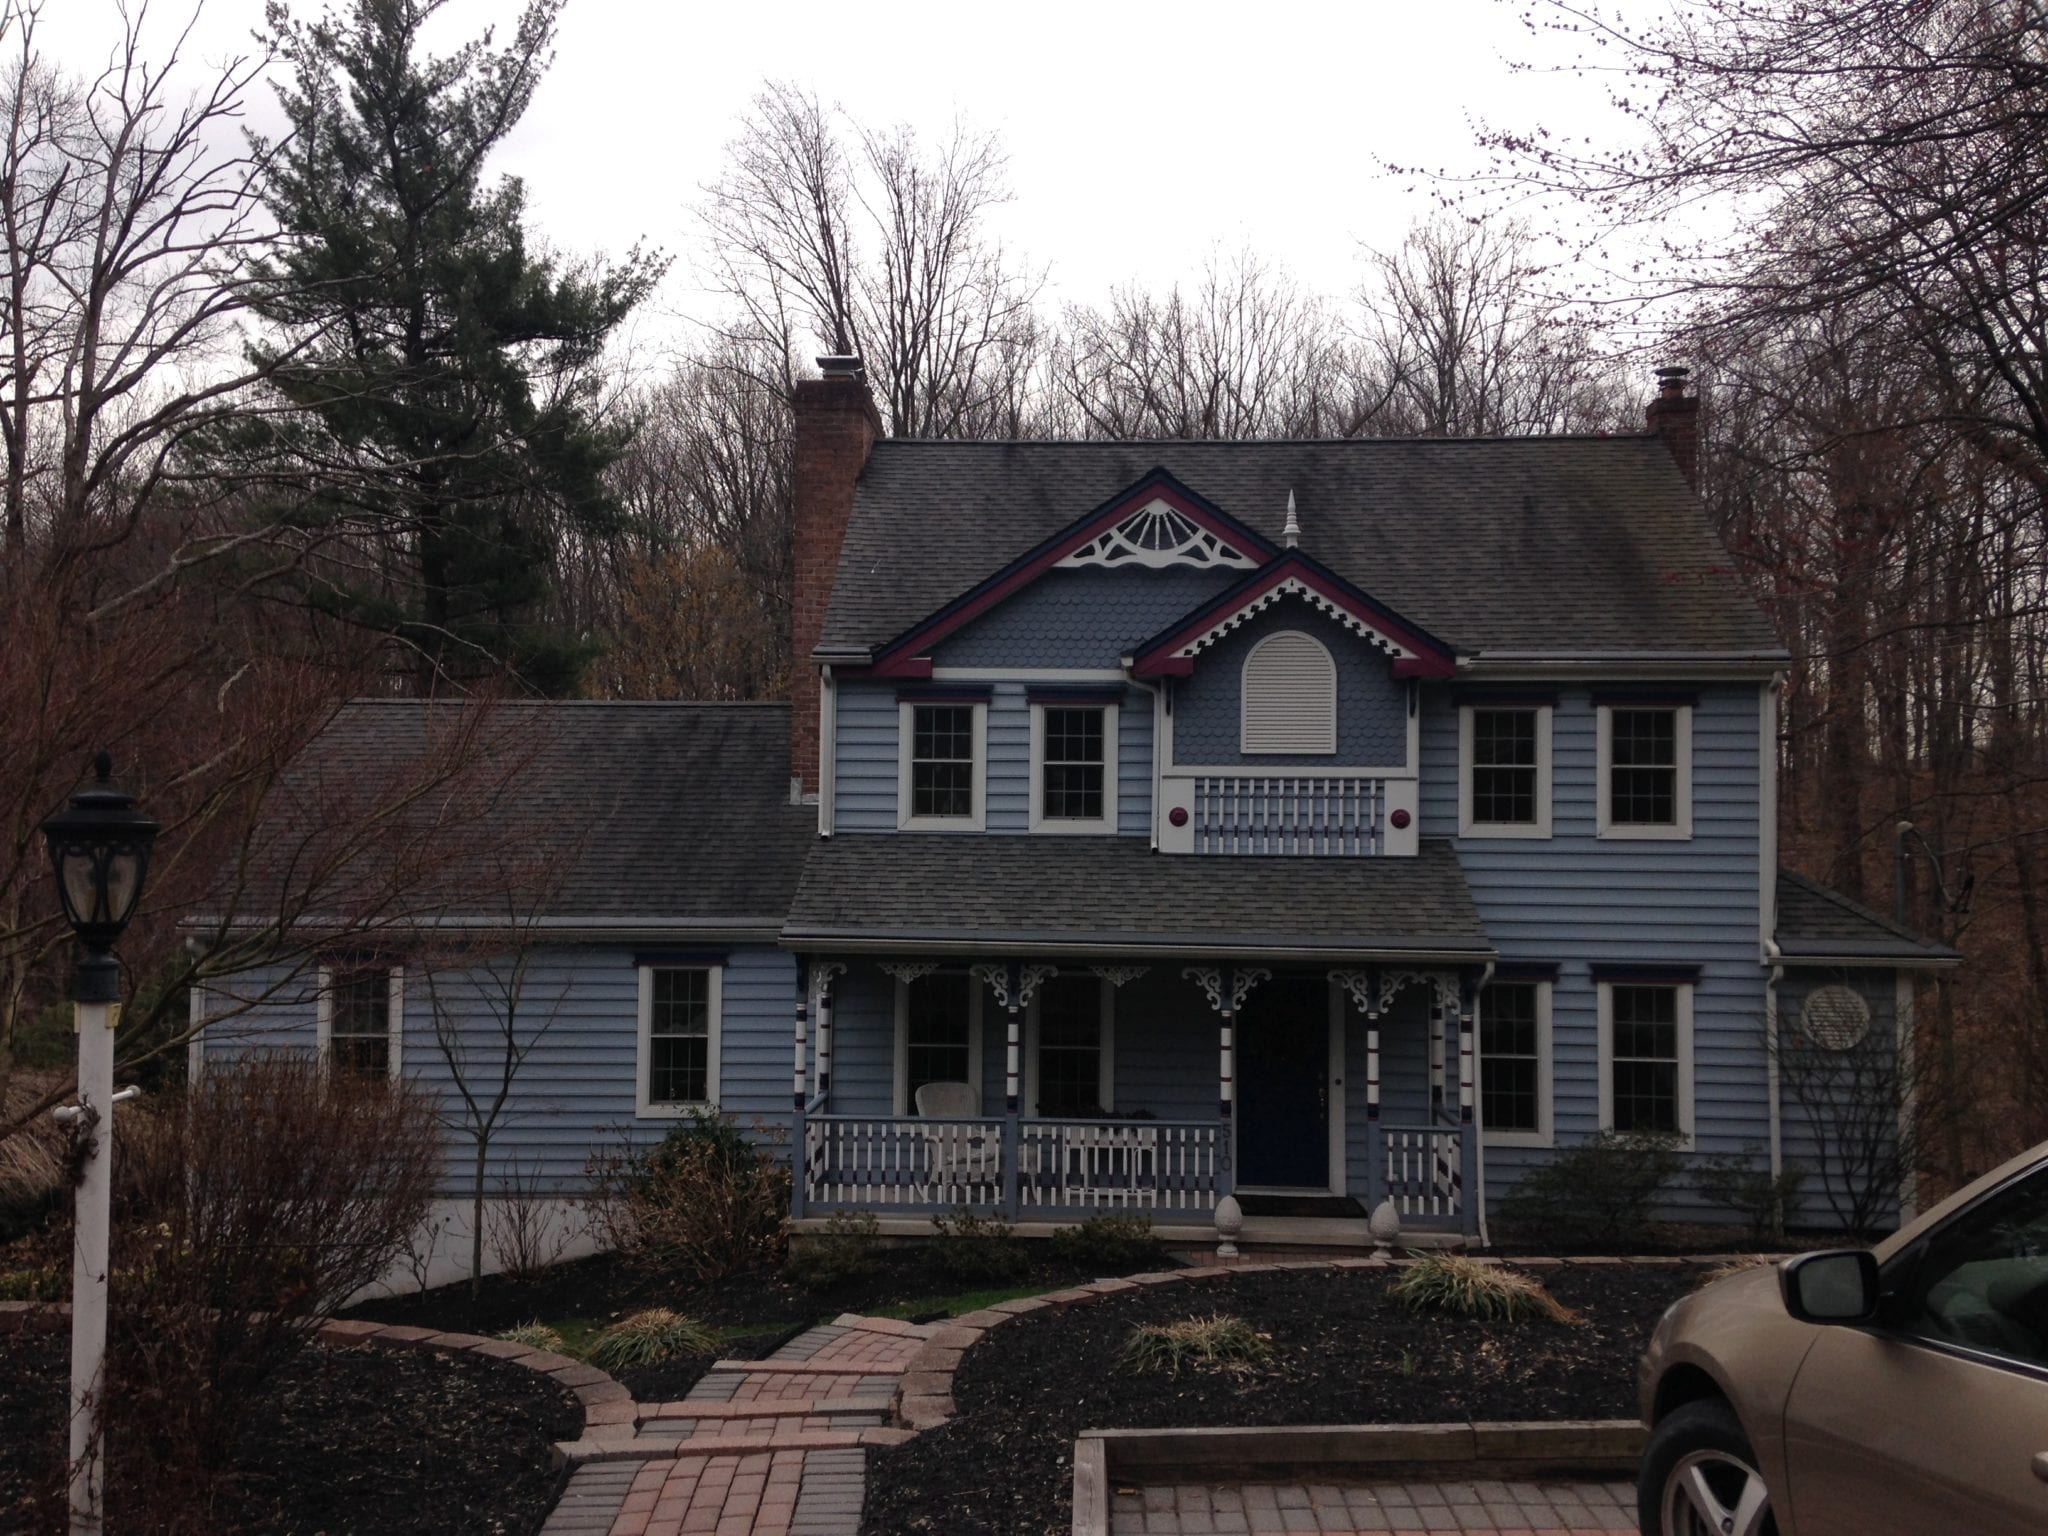 Roof Cleaning Westminster Md Pressure Washing Services